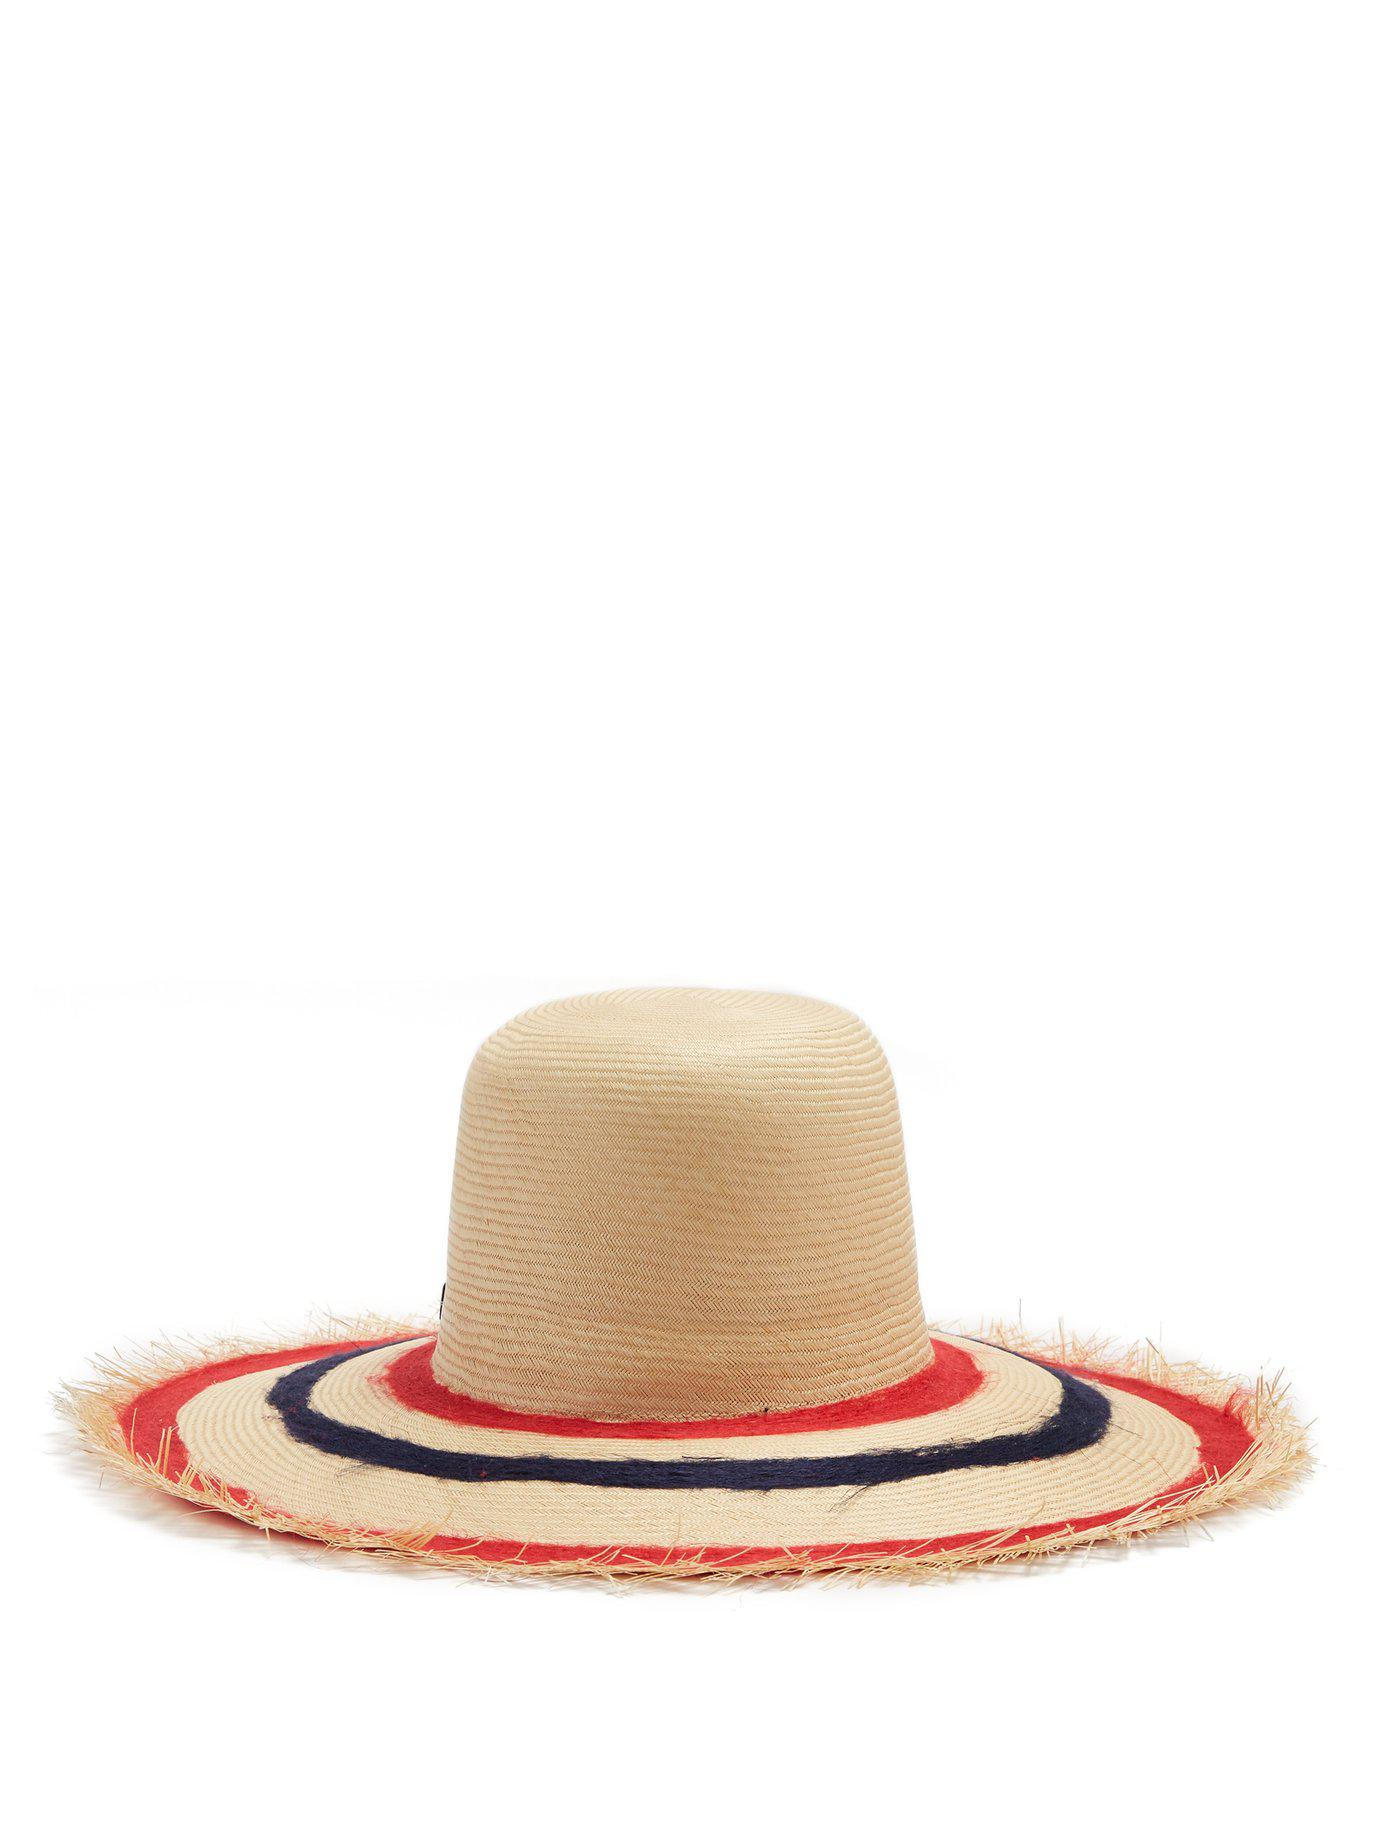 1e62161fd98 Lyst - Filù Hats Sinatra Feather Trimmed Straw Hat - Save 21%